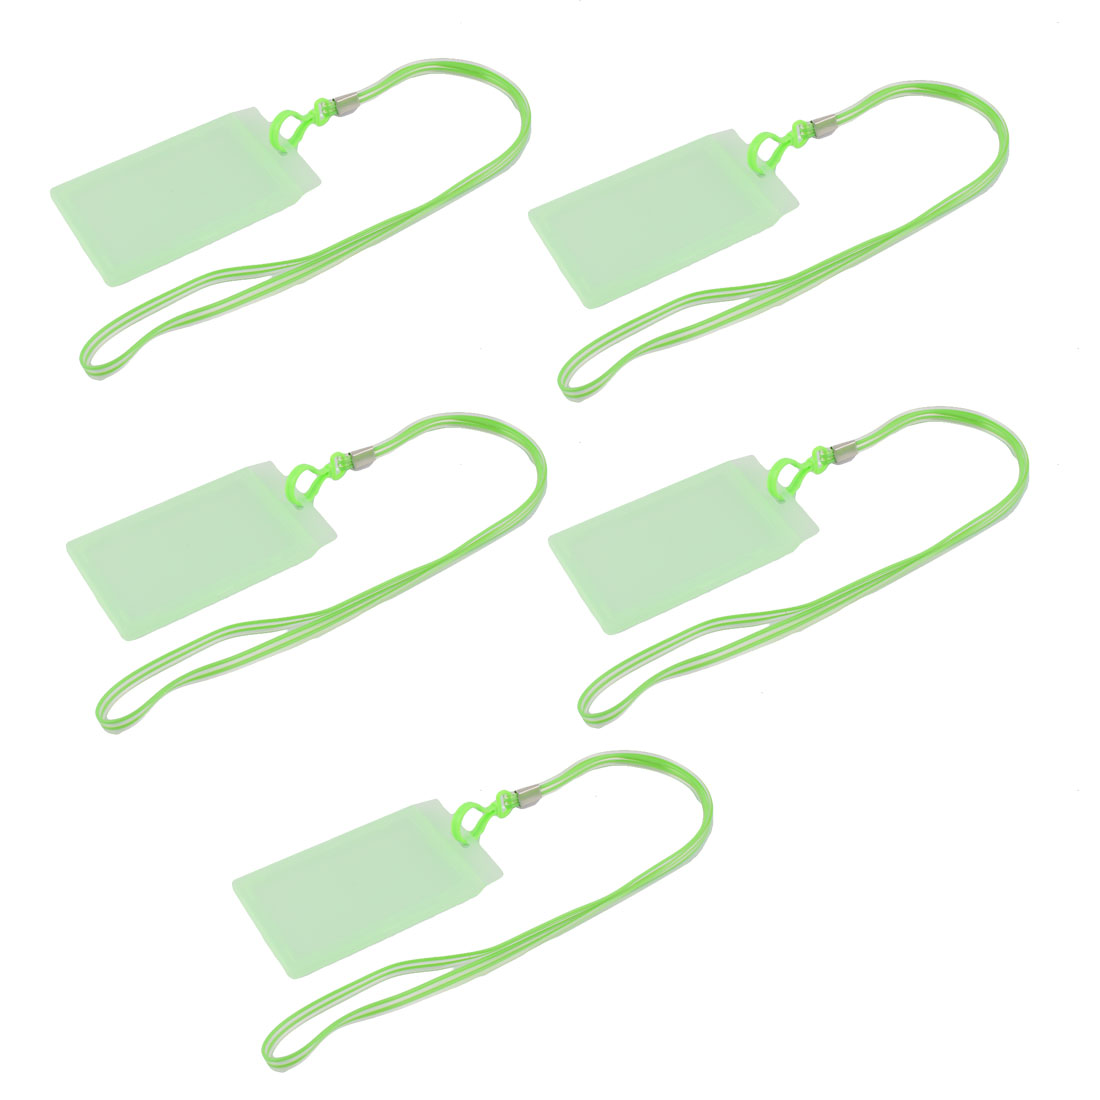 Plastic Vertical Style Lanyard Neck Strap Business Work ID Card Holder Green 5 Pcs